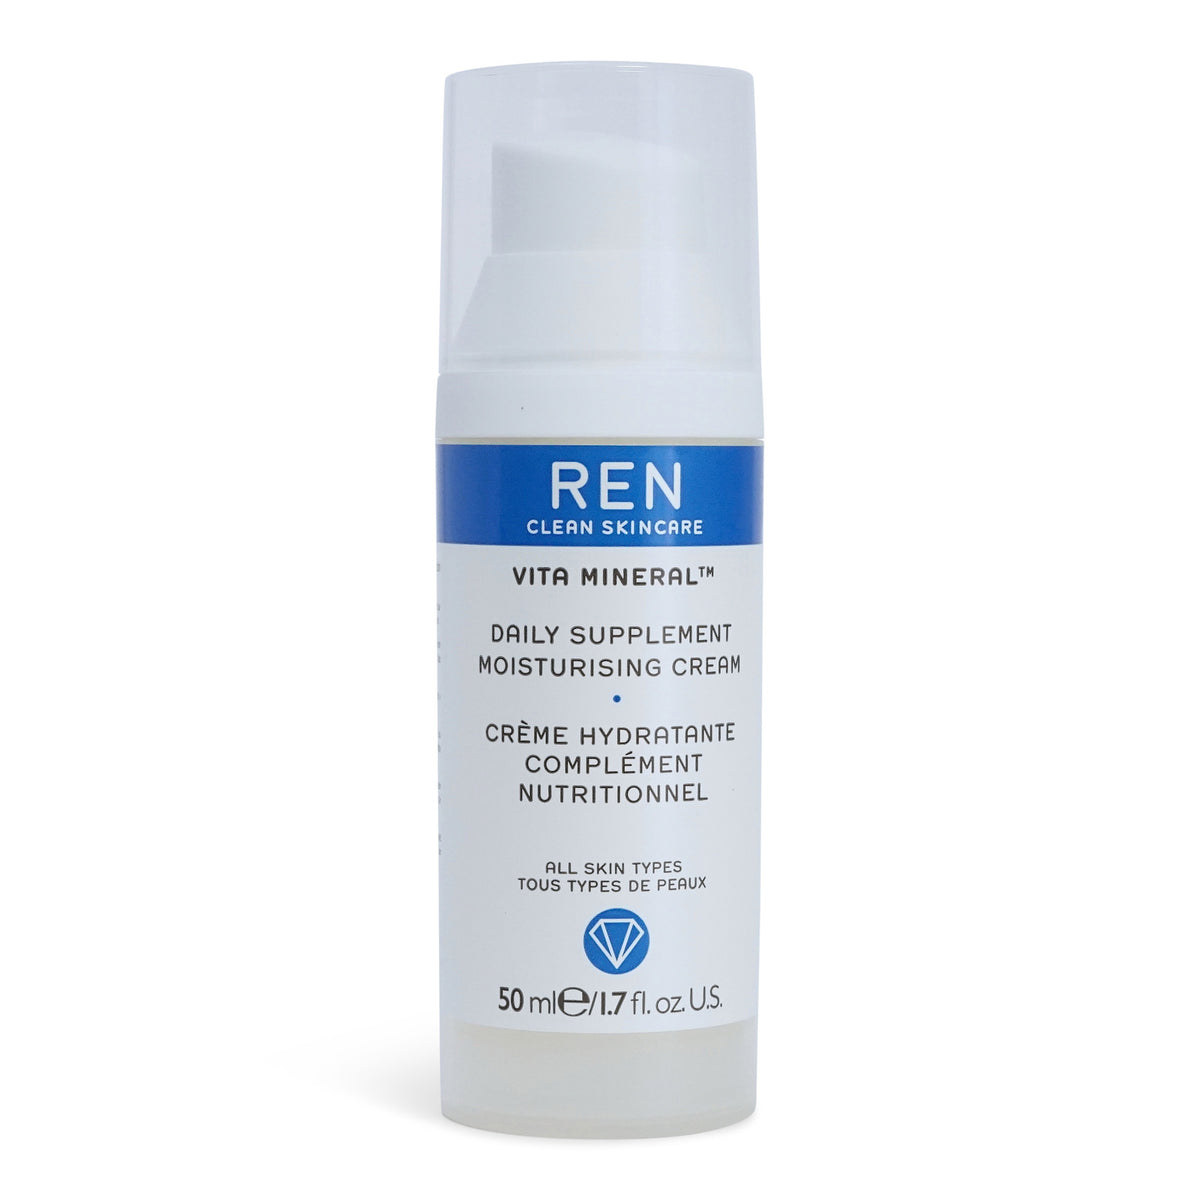 REN Skincare Vita Mineral Daily Supplement Moisturising Cream - multiactive moisturizing day cream (50 ml / 1.7 fl. Oz.) (3/cs)